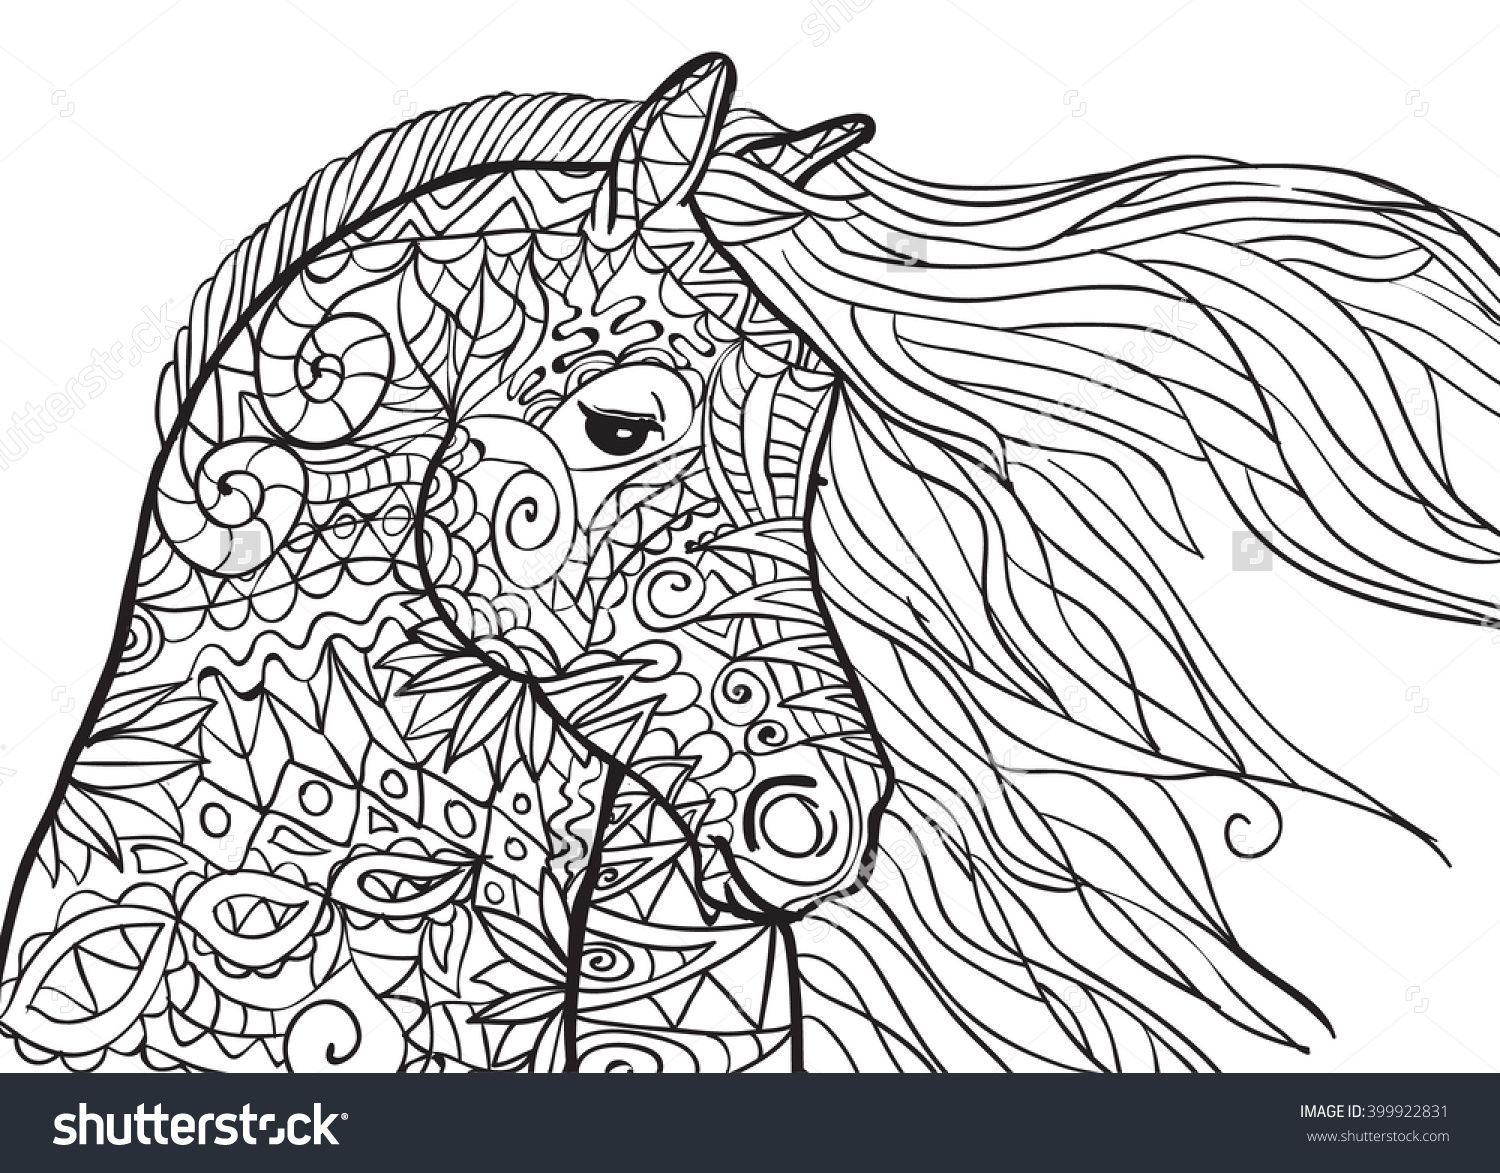 Hand Drawn Coloring Pages With